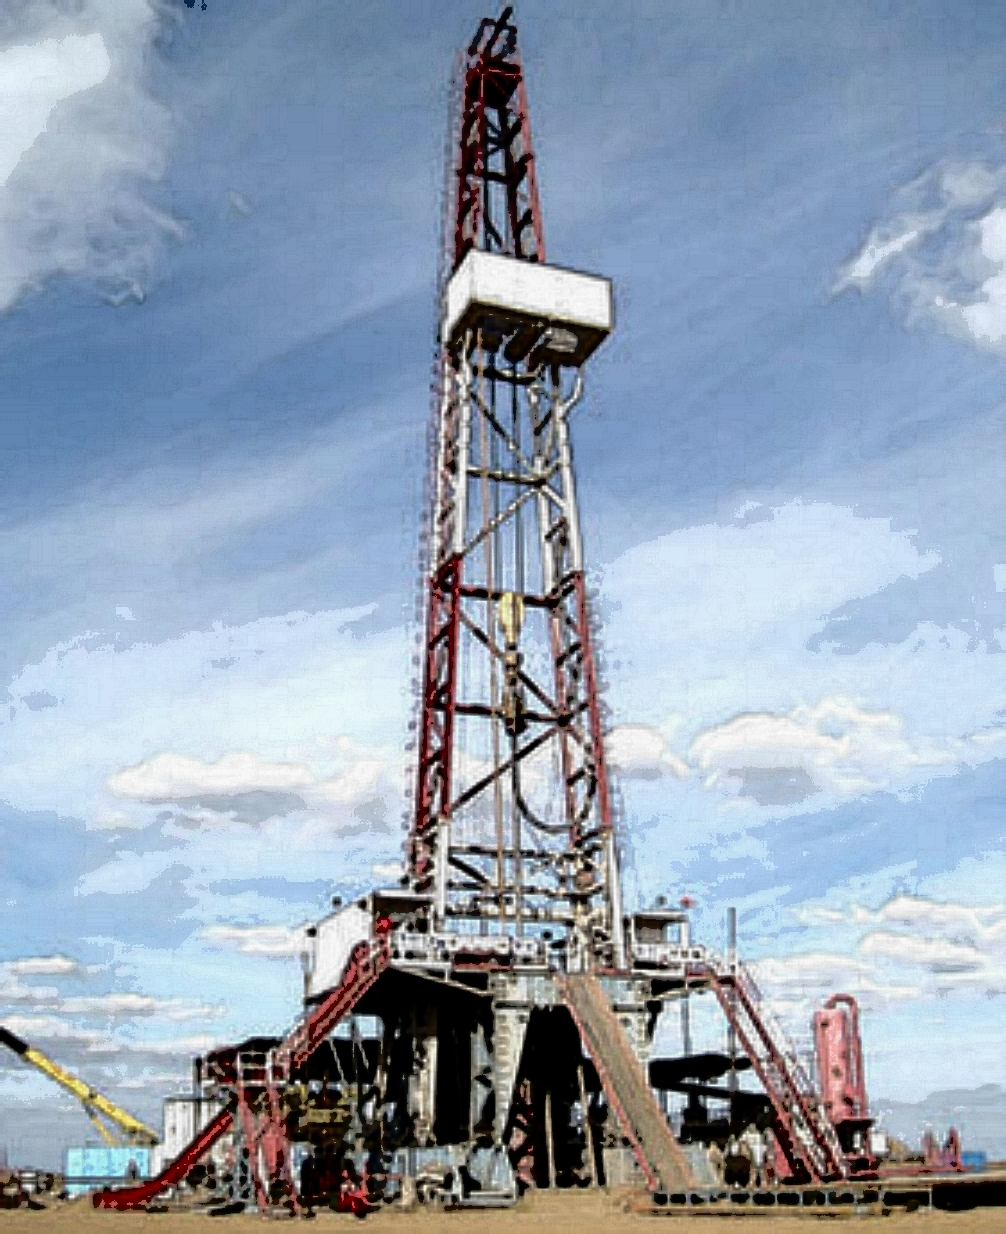 Towering Oil & Gas Drilling Rig Cartoon Image